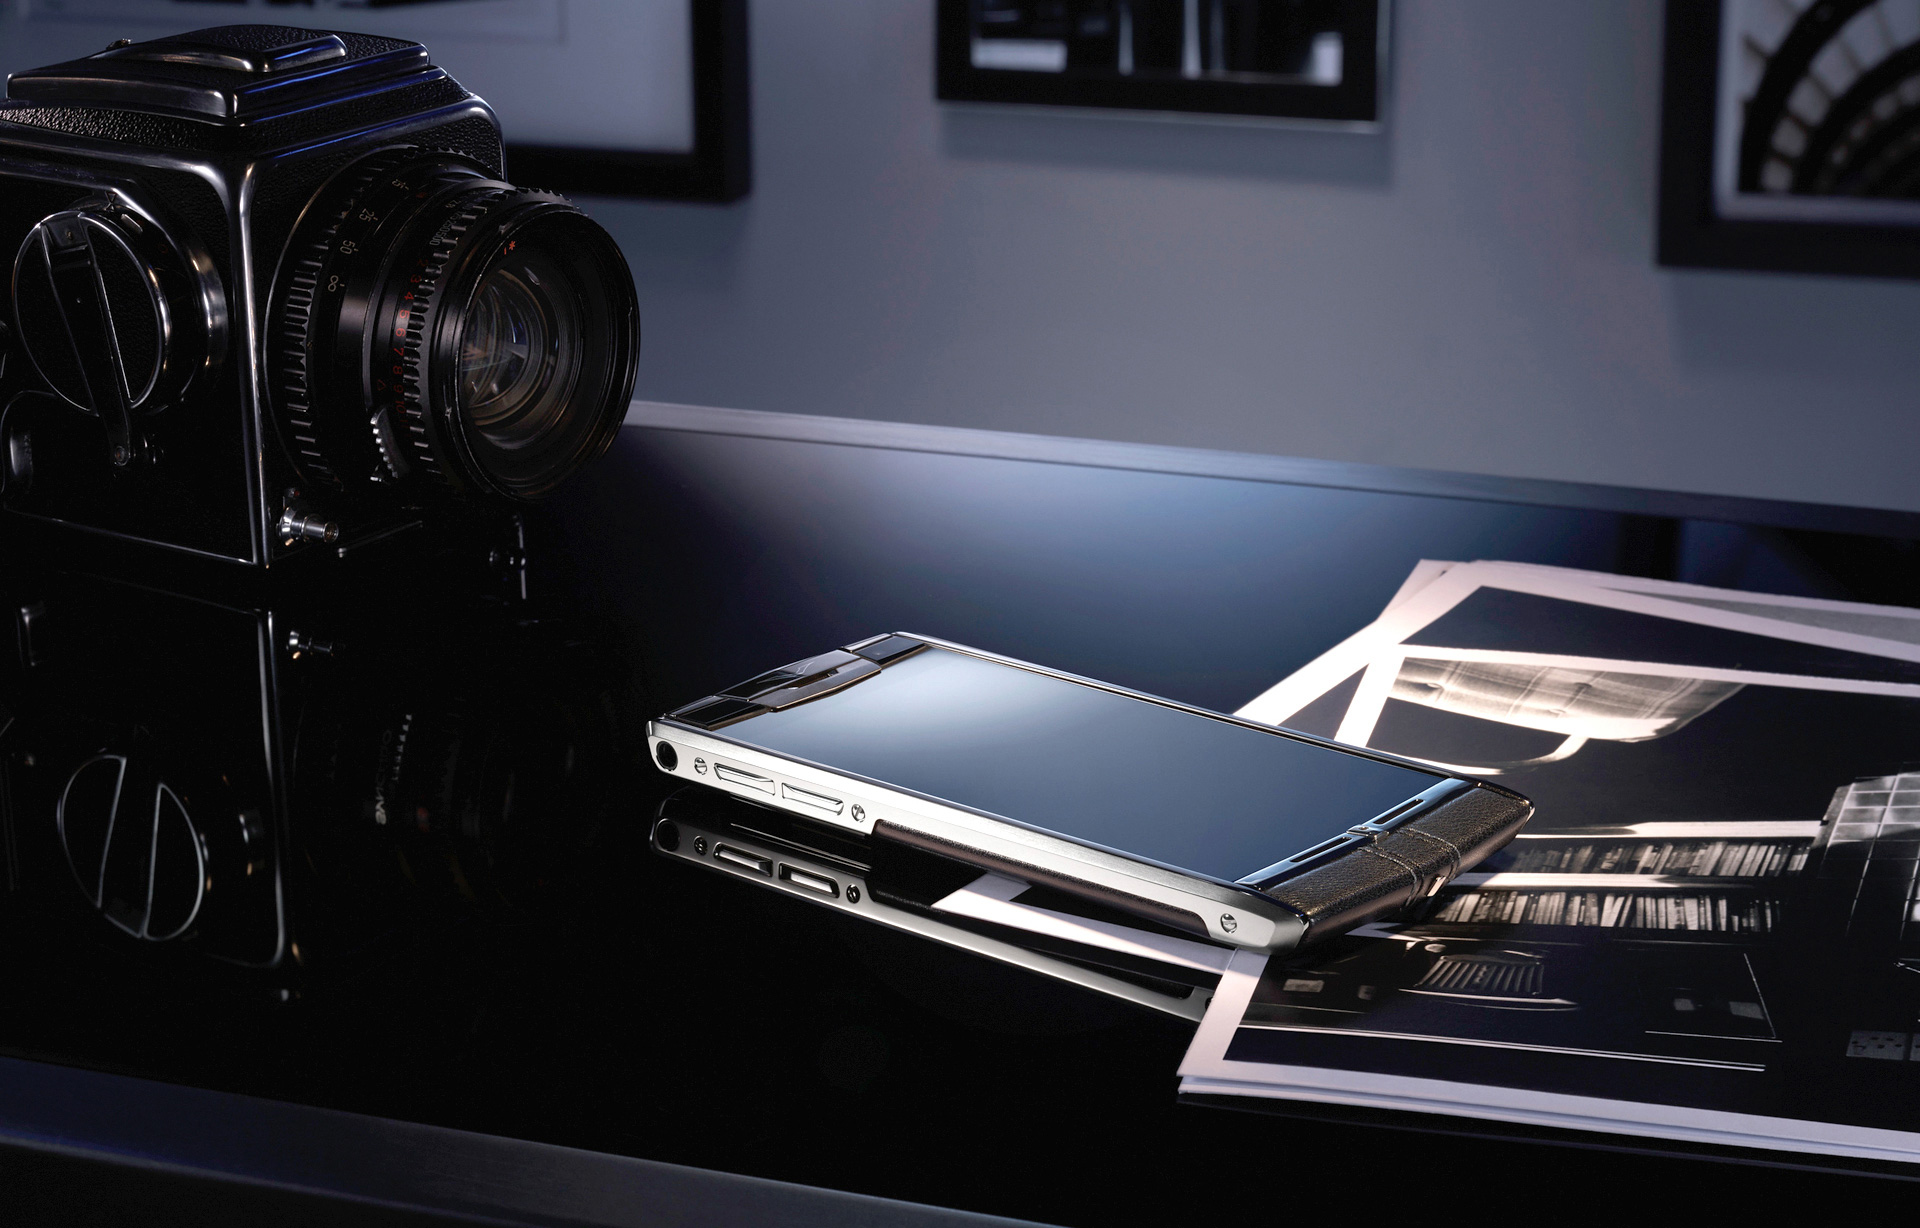 Vertu Phone Signature Touch Jet Calf. Global Luxury Business Gifts